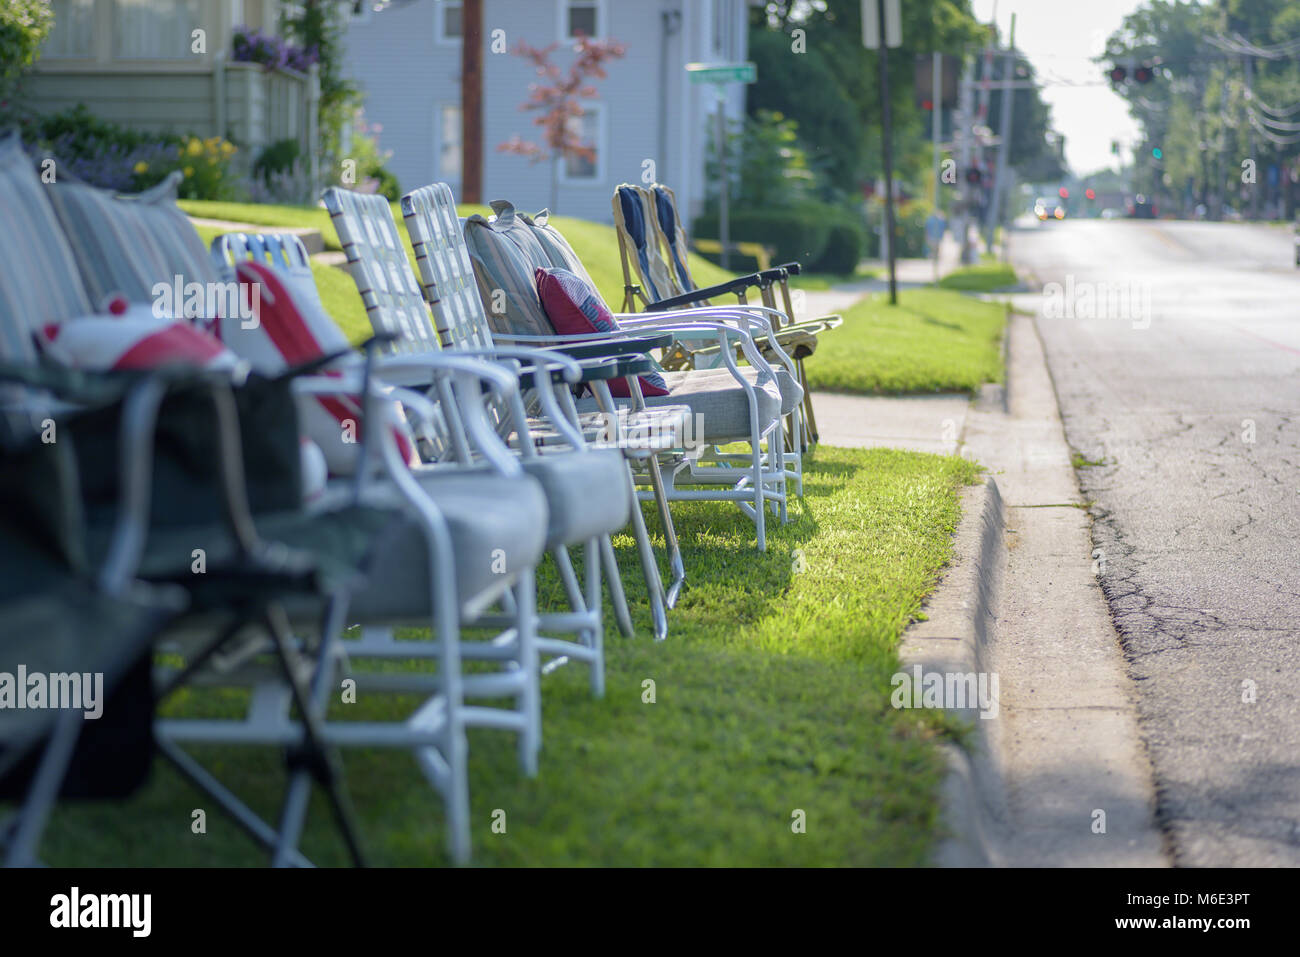 row of empty chairs staked out early along street for the annual fourth of July parade - Stock Image